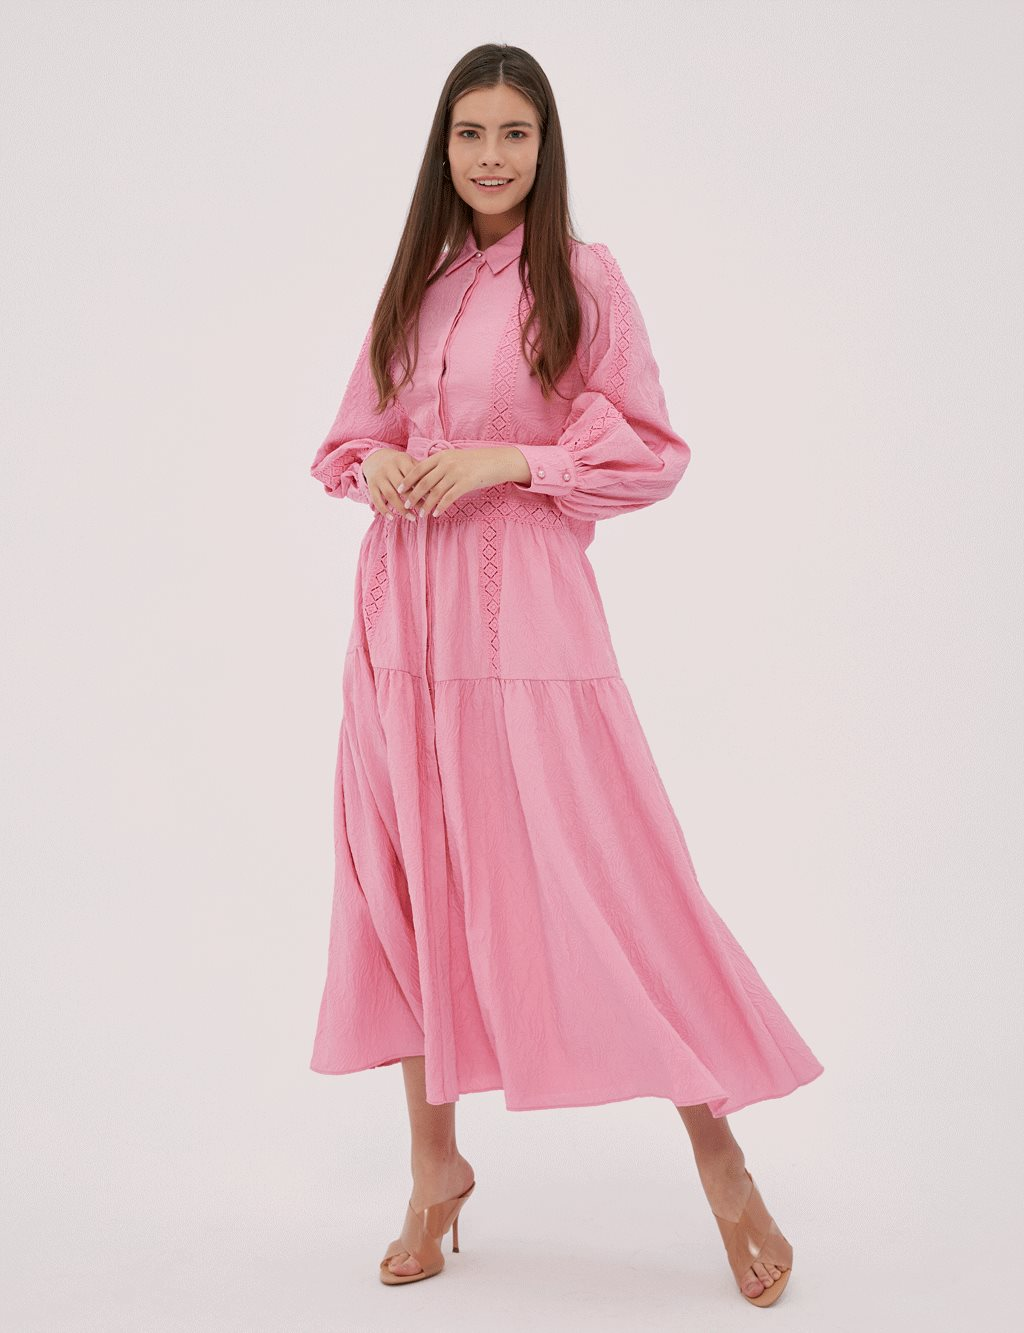 Balloon Sleeve Eyelet Detailed Dress B20 23065 Pink